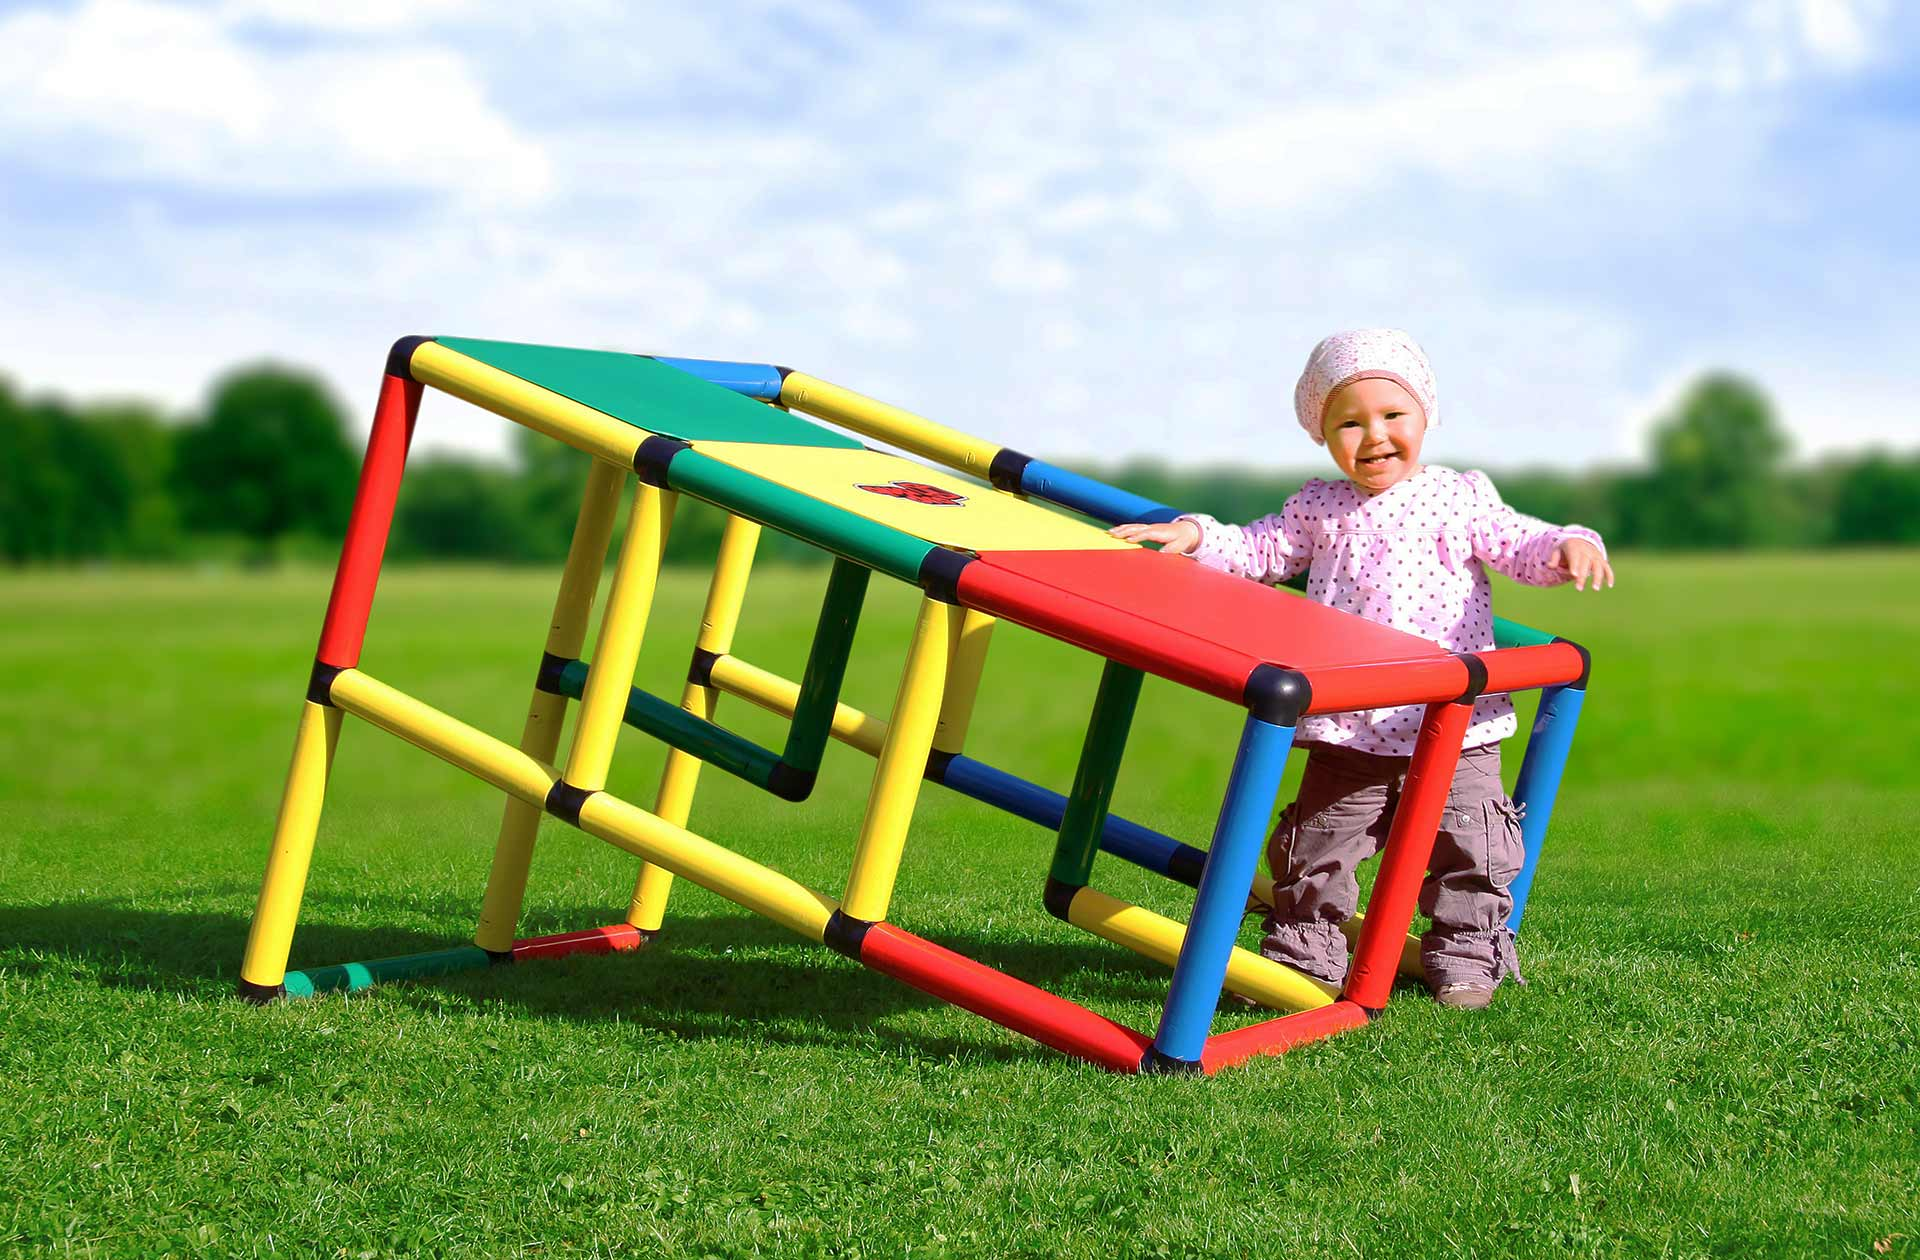 Baby playing with QUADRO ramp outdoors